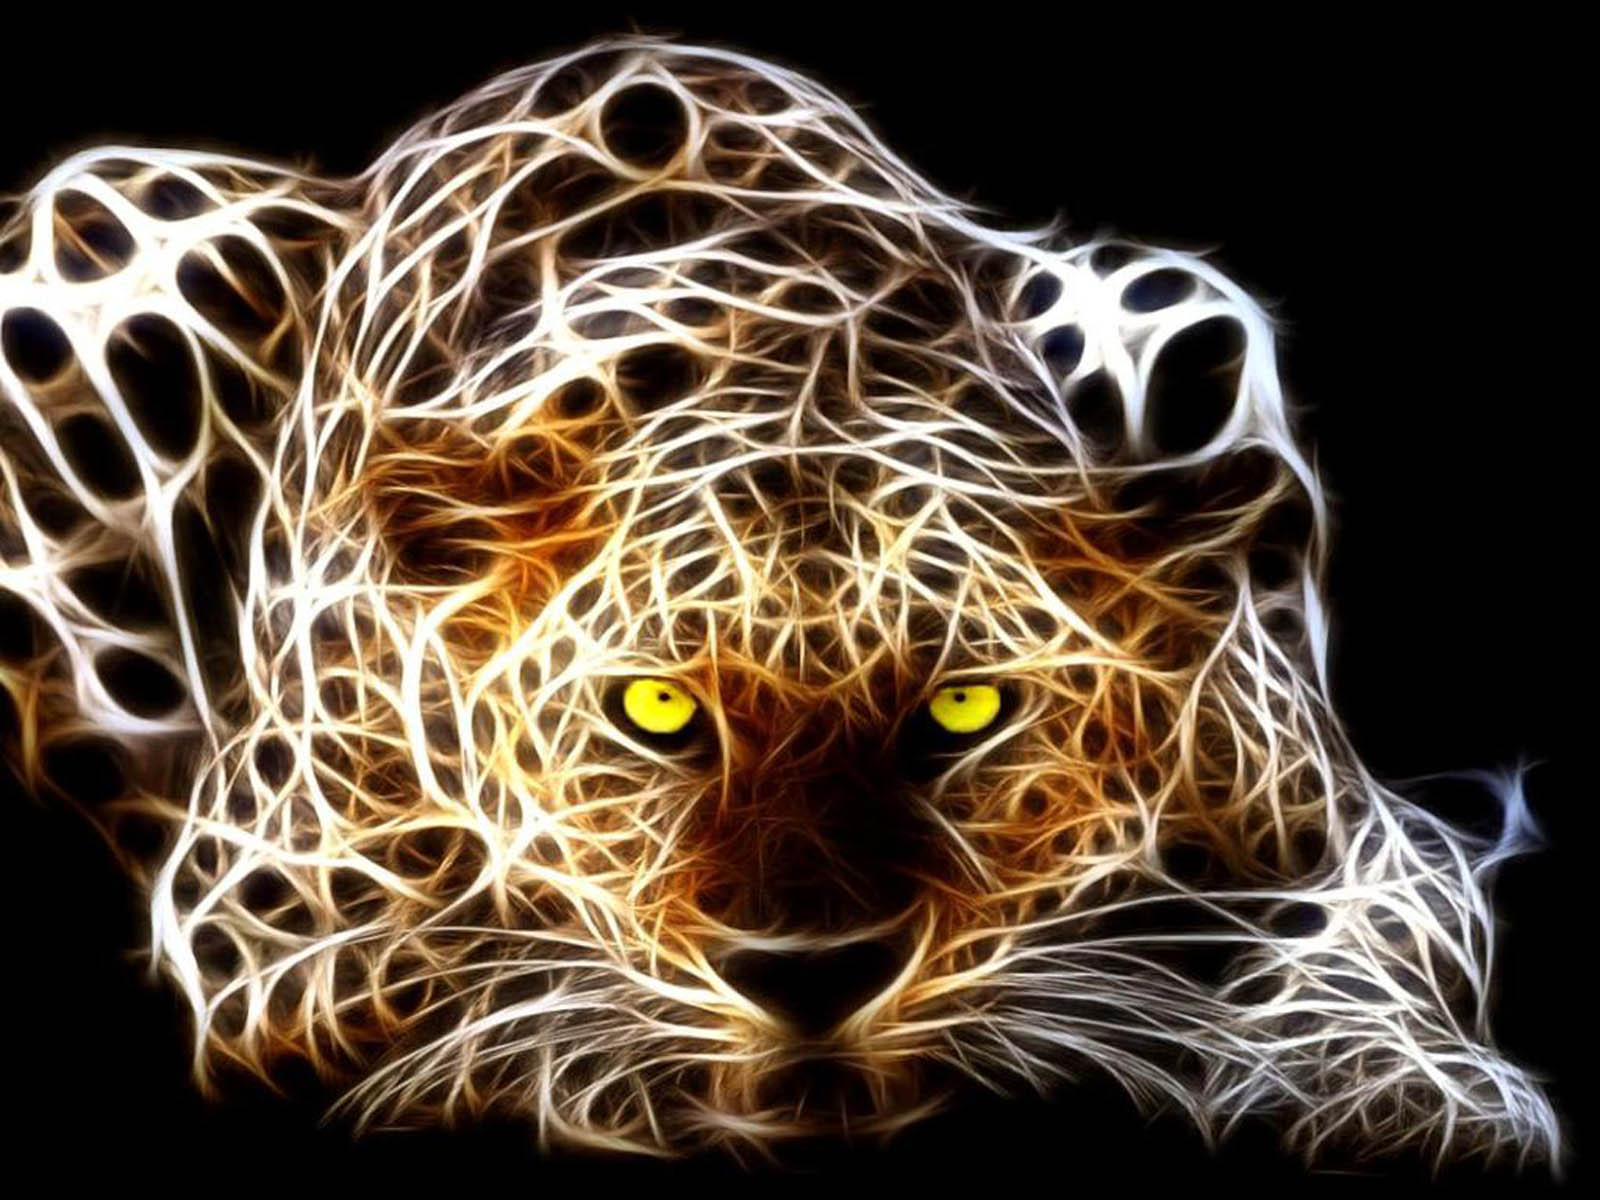 Tiger 3D Wallpapers Images Photos Pictures and Backgrounds for 1600x1200